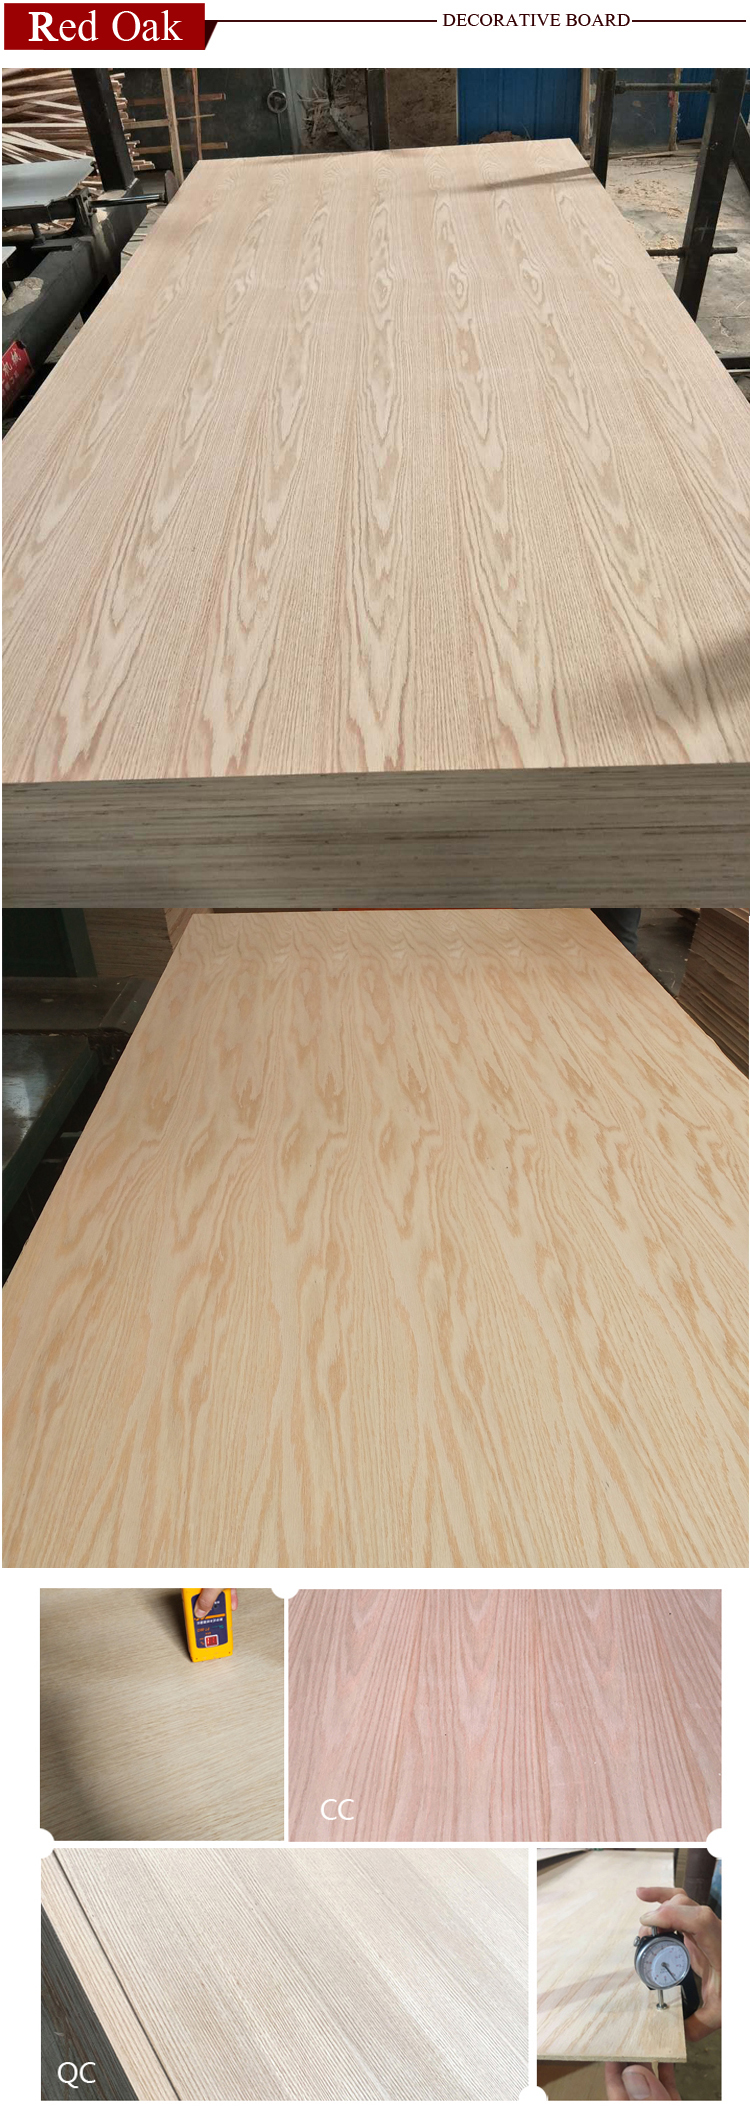 A, AA or AAA Grade Natural Red Oak Plywood